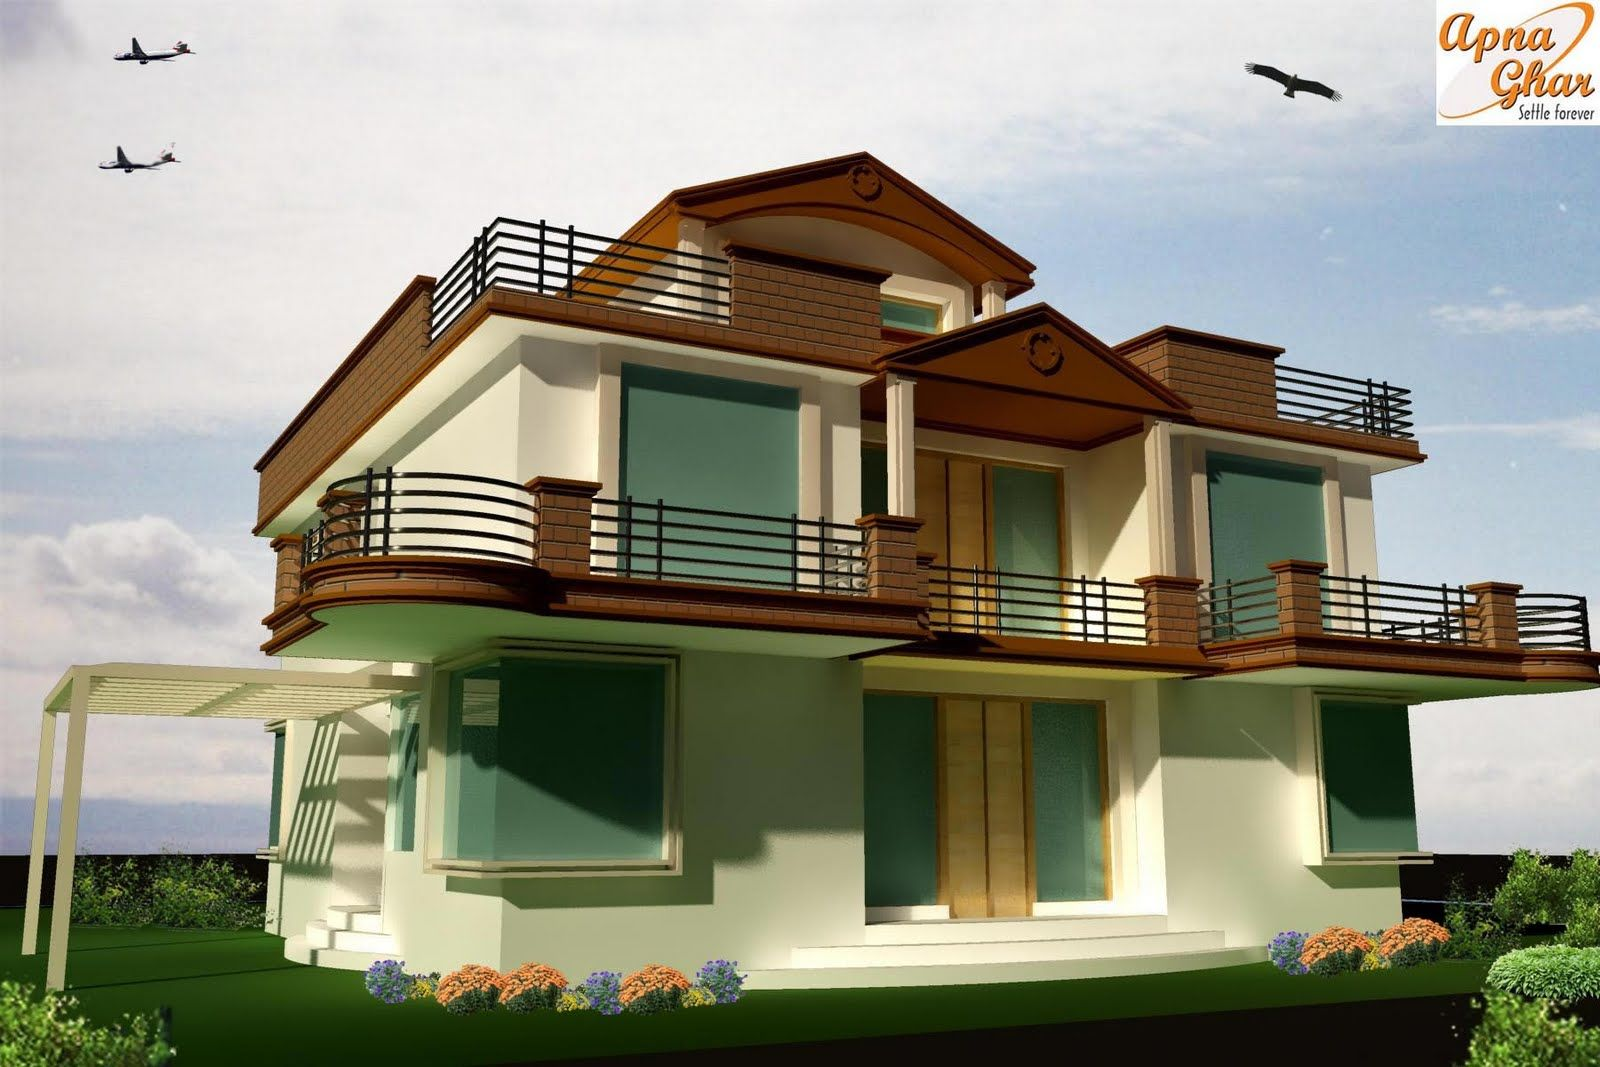 Architectural designs modern architectural house plans for Modern home designs plans